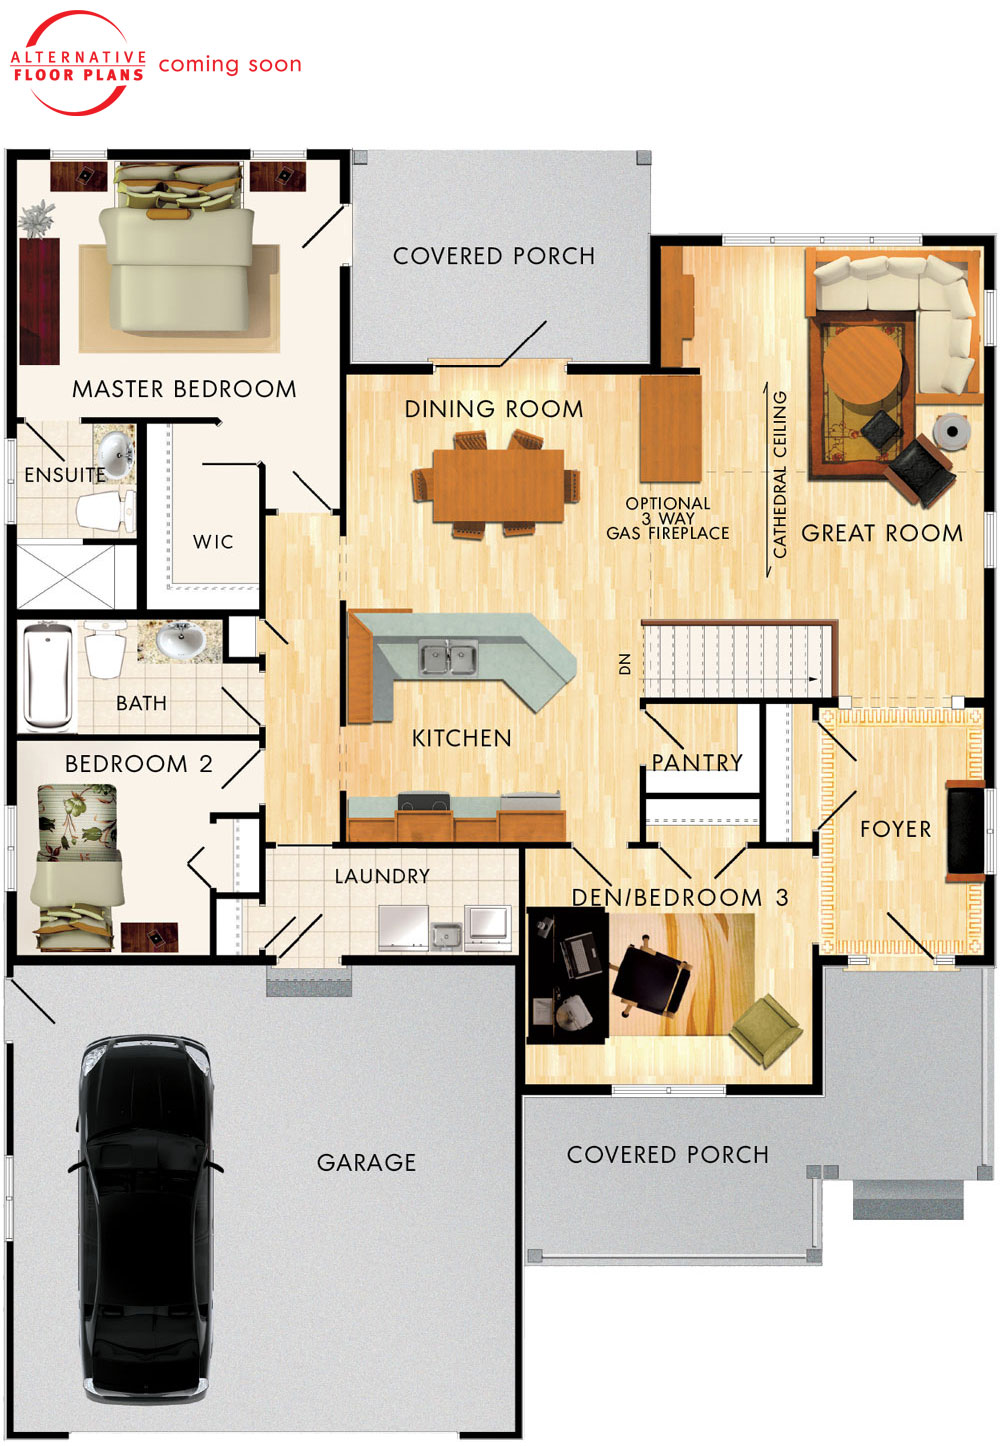 Beaver homes and cottages birchlane for Home hardware floor plans